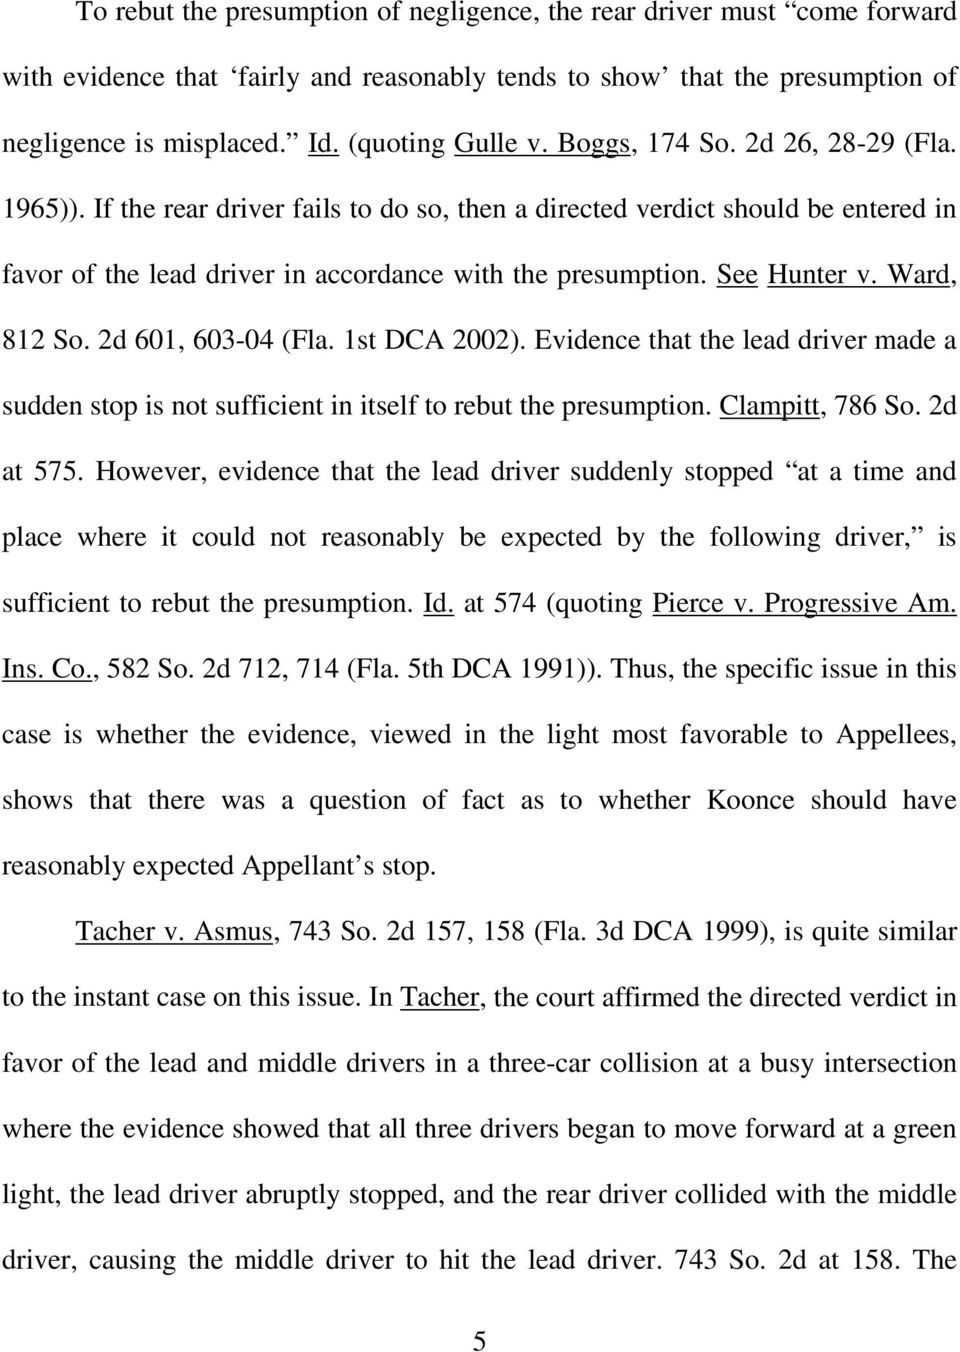 Ward, 812 So. 2d 601, 603-04 (Fla. 1st DCA 2002). Evidence that the lead driver made a sudden stop is not sufficient in itself to rebut the presumption. Clampitt, 786 So. 2d at 575.